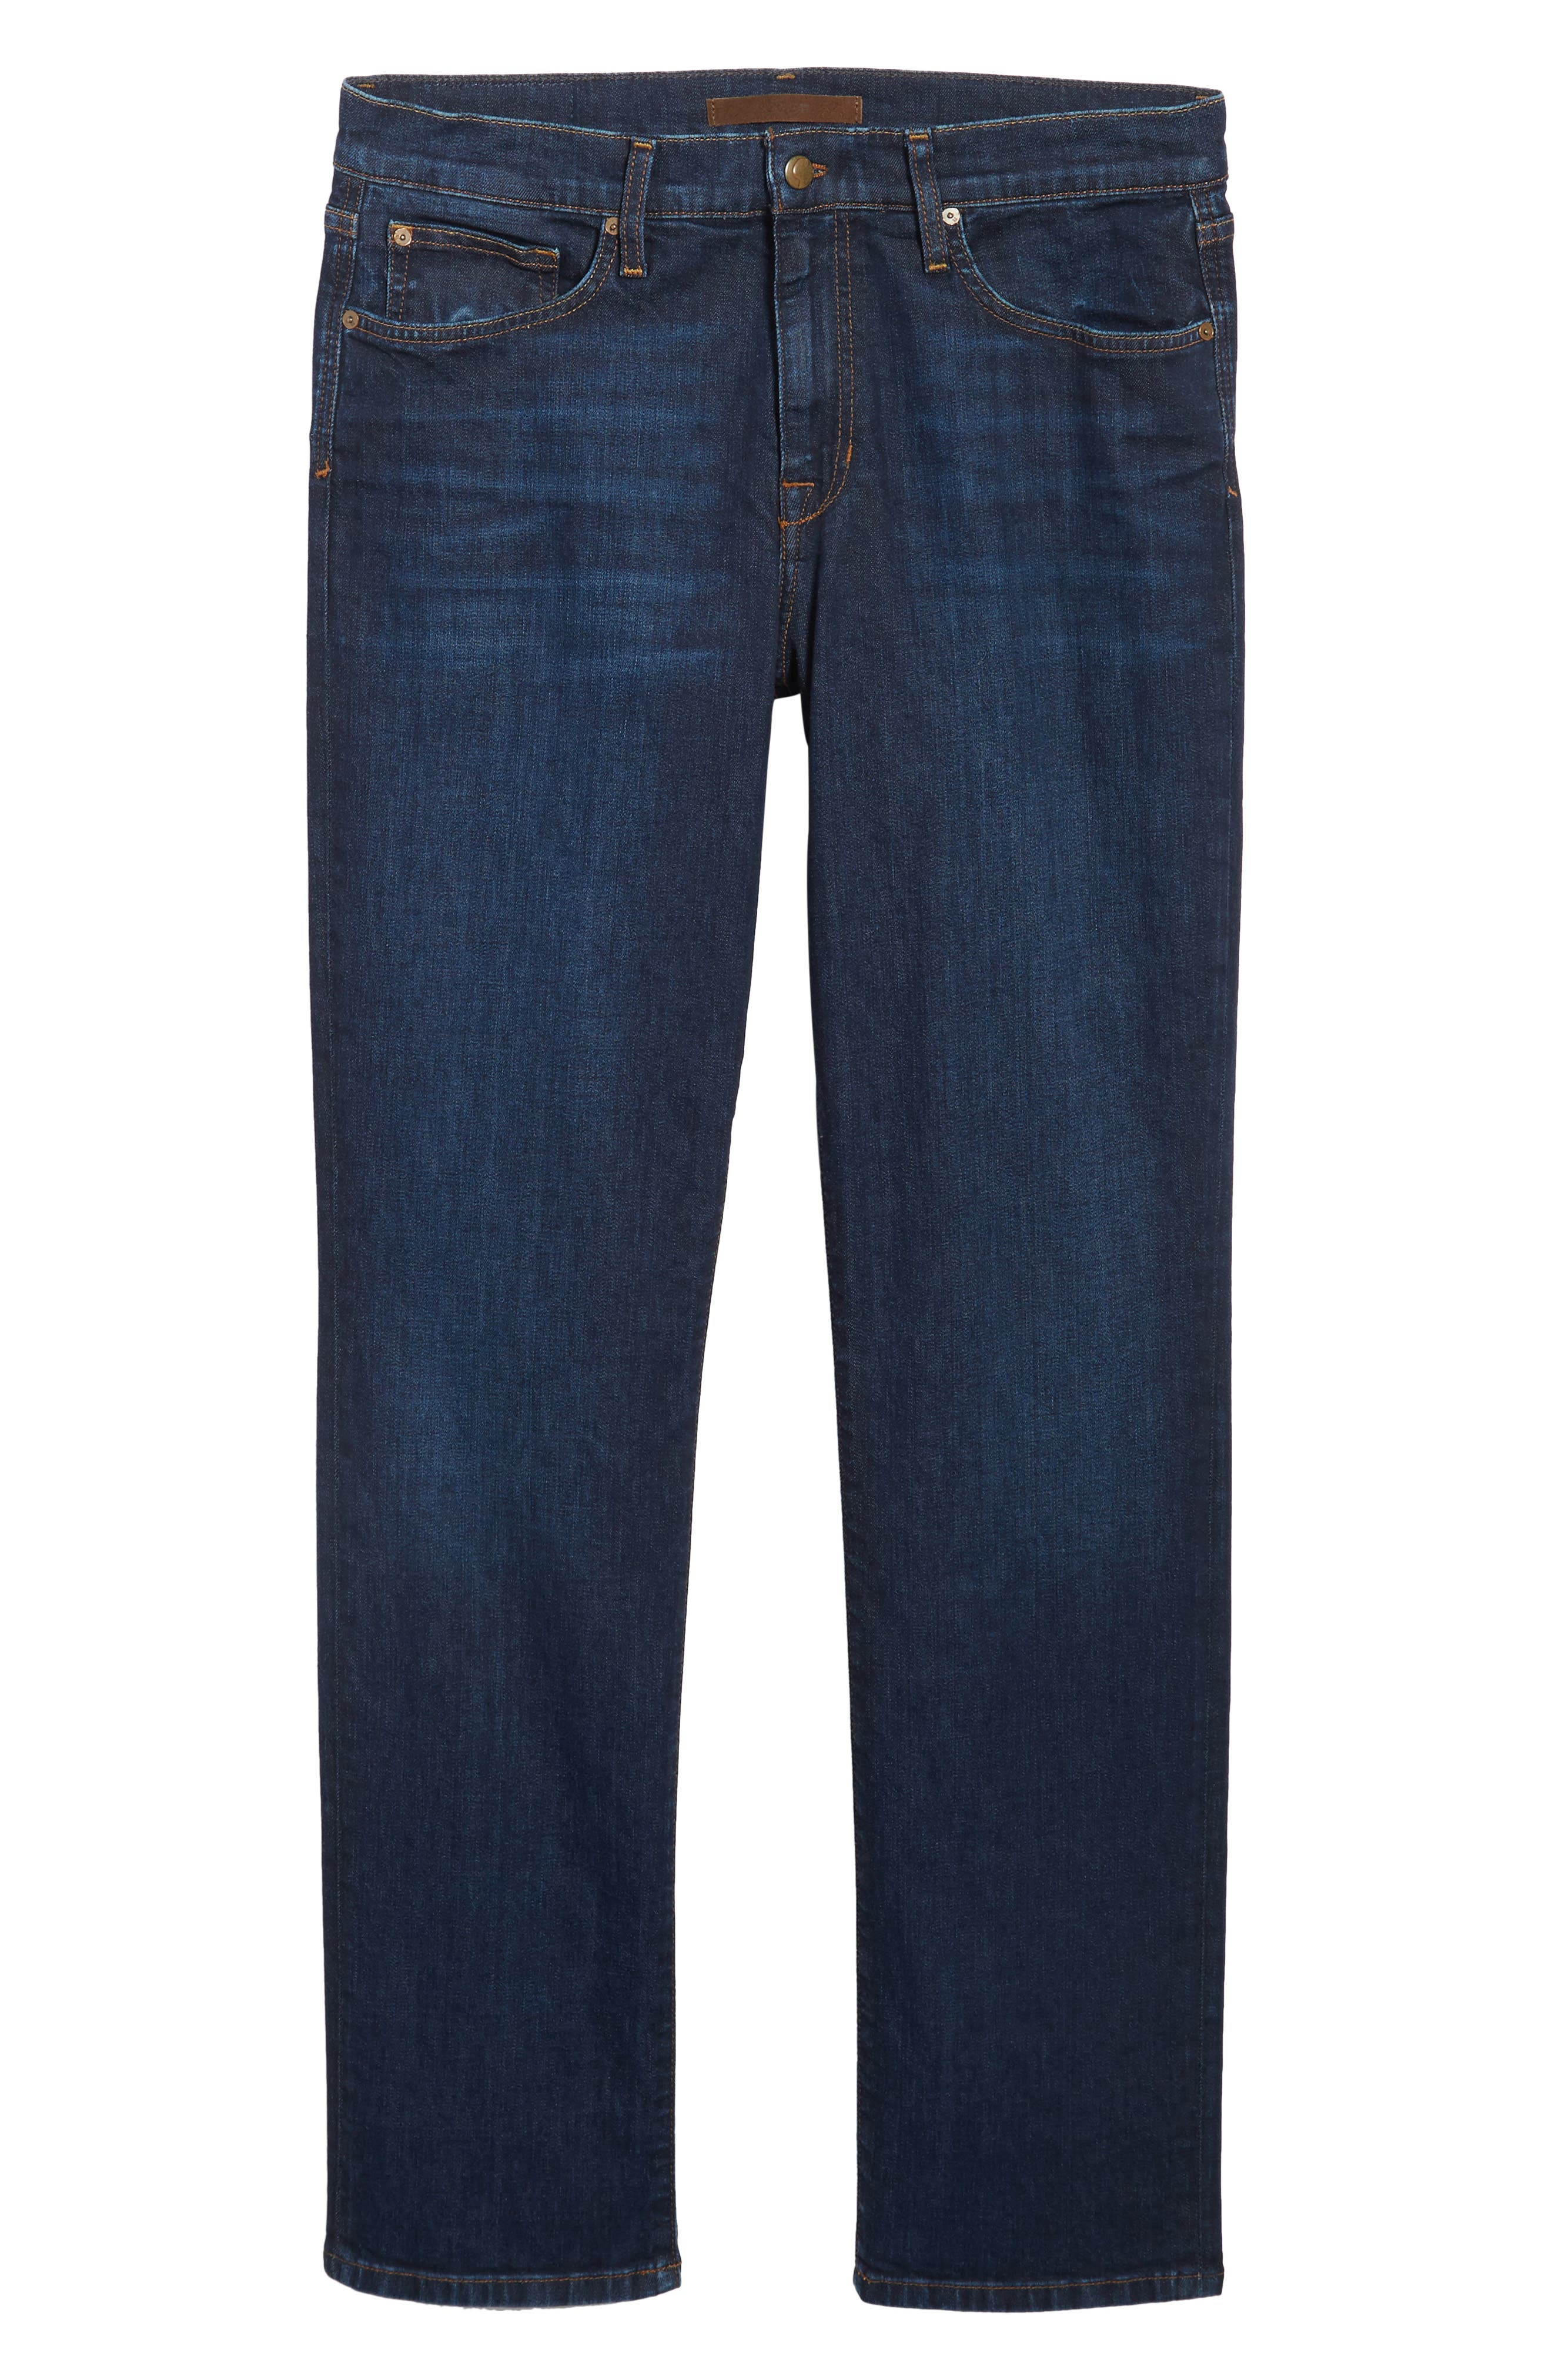 Classic Straight Fit Jeans,                             Alternate thumbnail 6, color,                             402